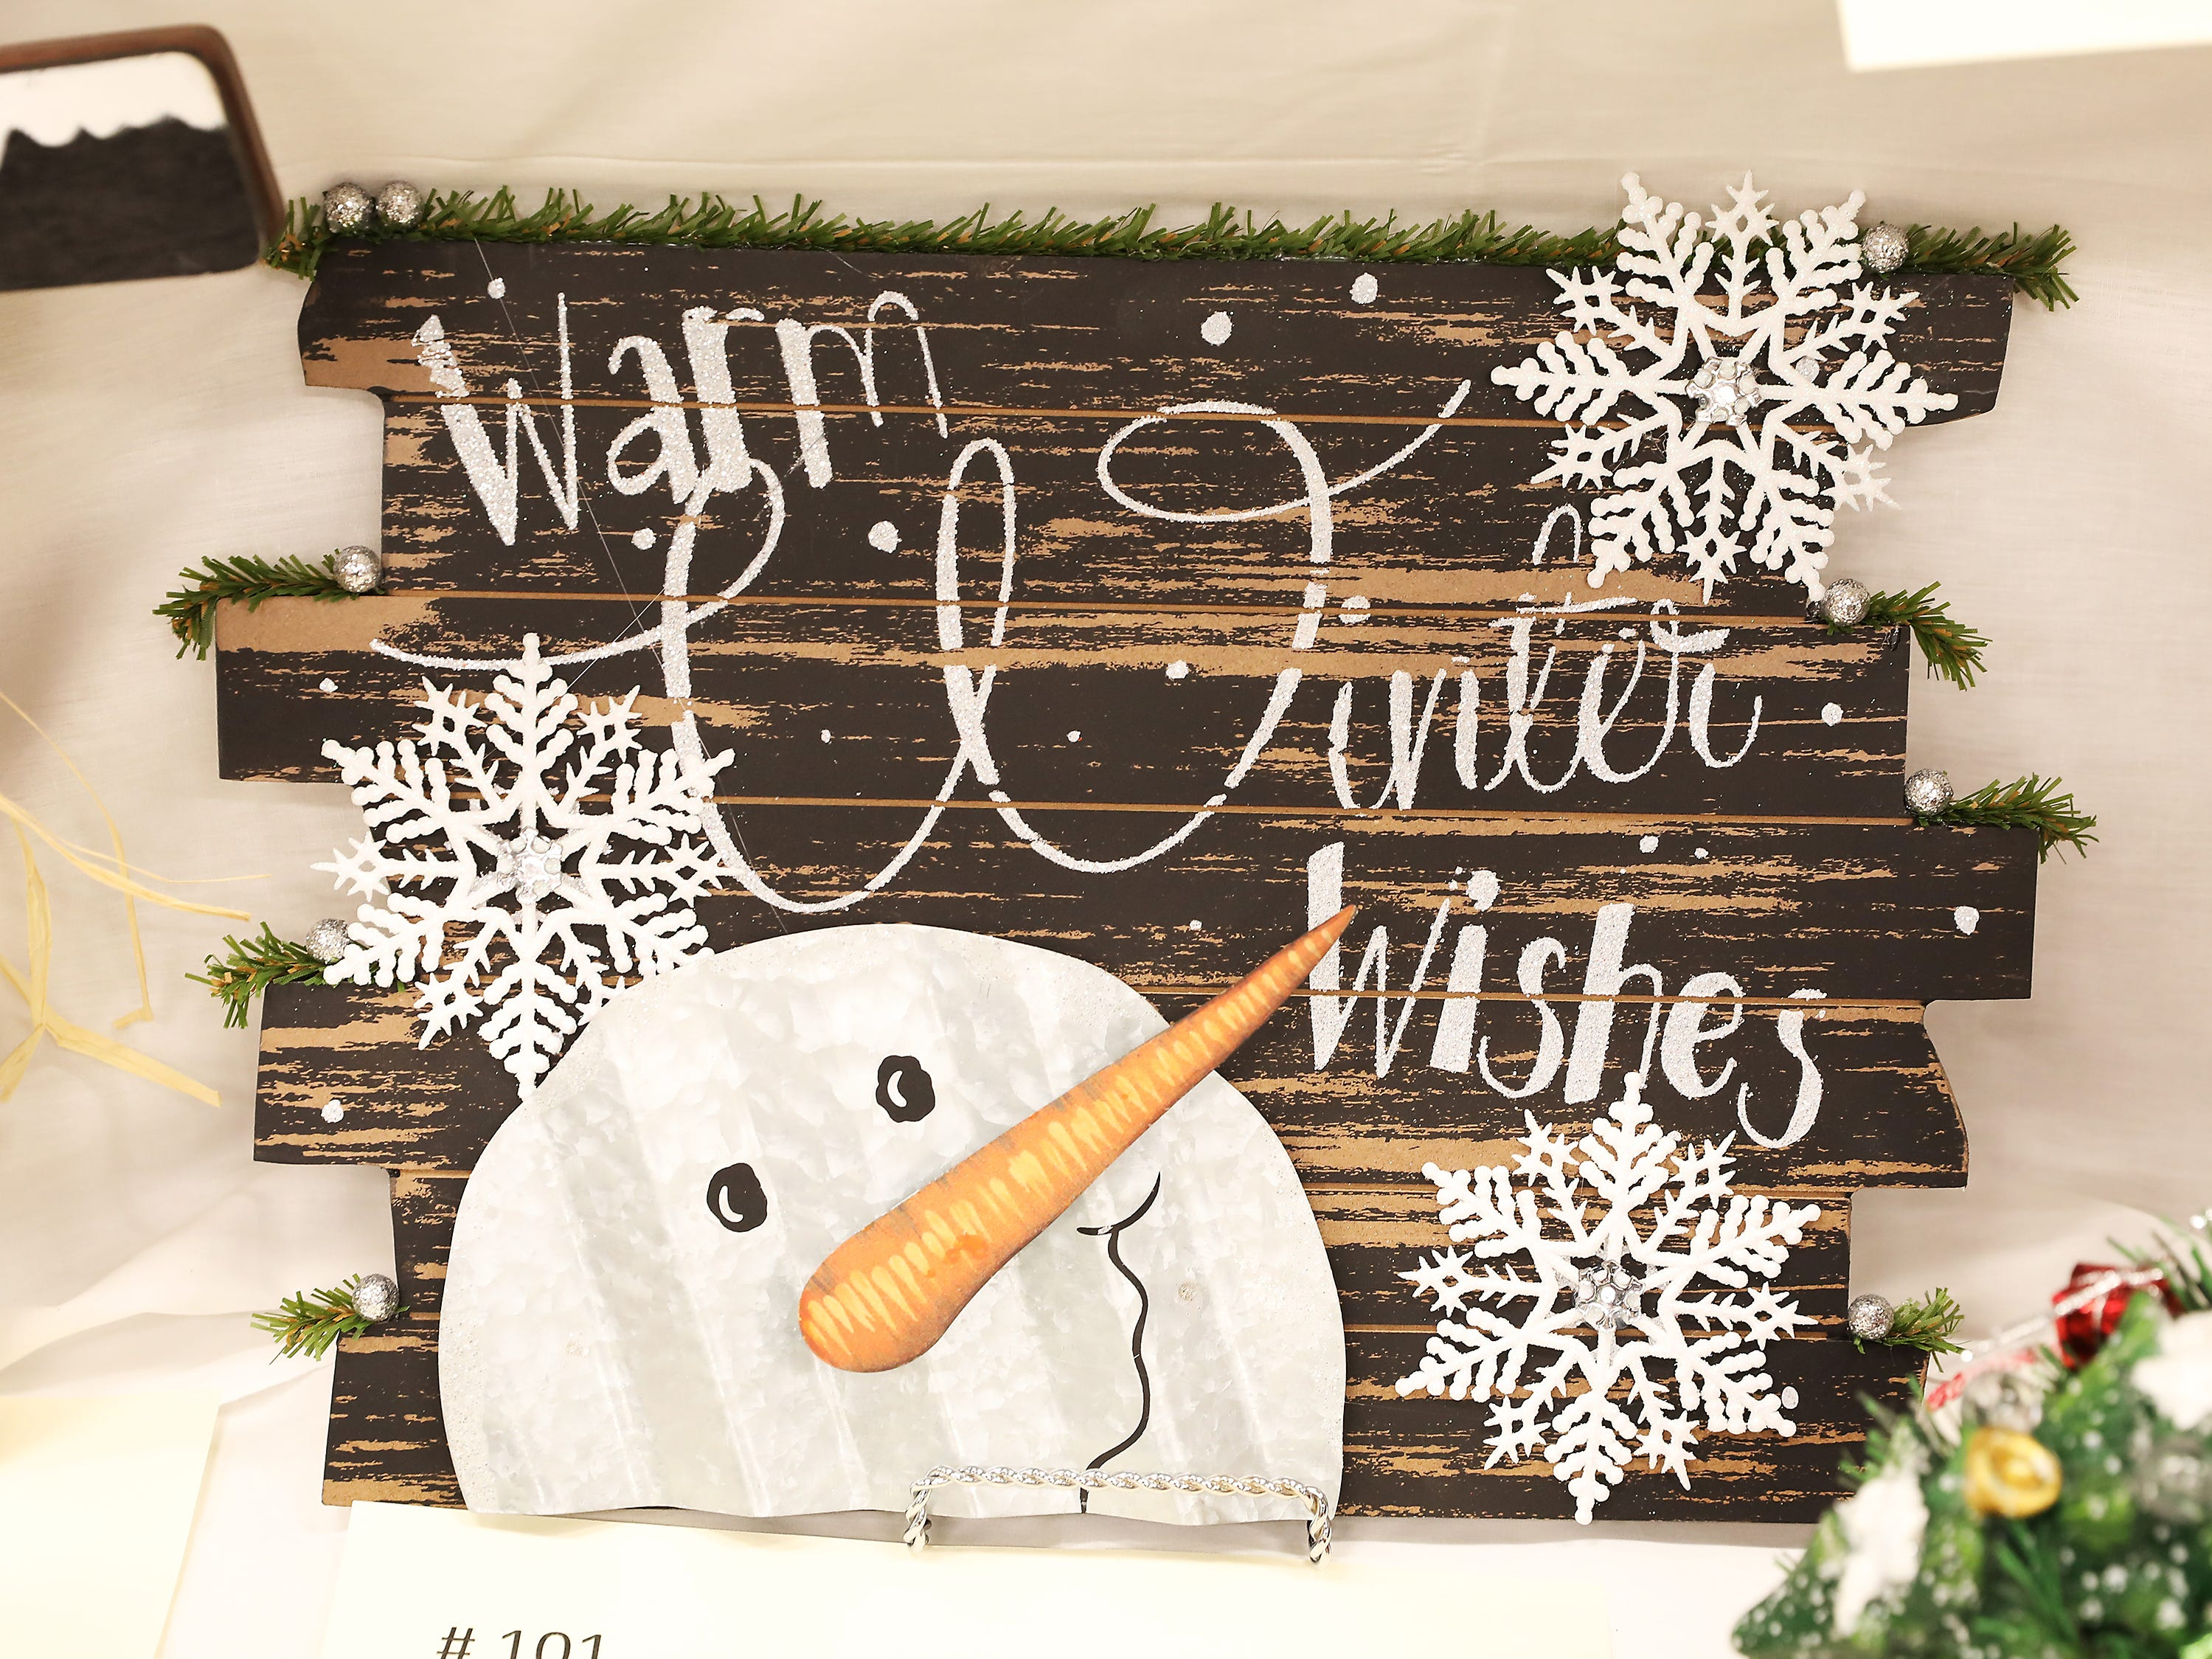 "101	1:00 PM	John Glenn High School	Other	Warm Winter Wishes	This beautiful 16""x11"" Warm Winter Wishes sign features a metal snowman, white snowflakes and paneled wood with a distressed and rustic finish.  		2 all sport passes for the 2018-2019 school year.  Go Muskies!"